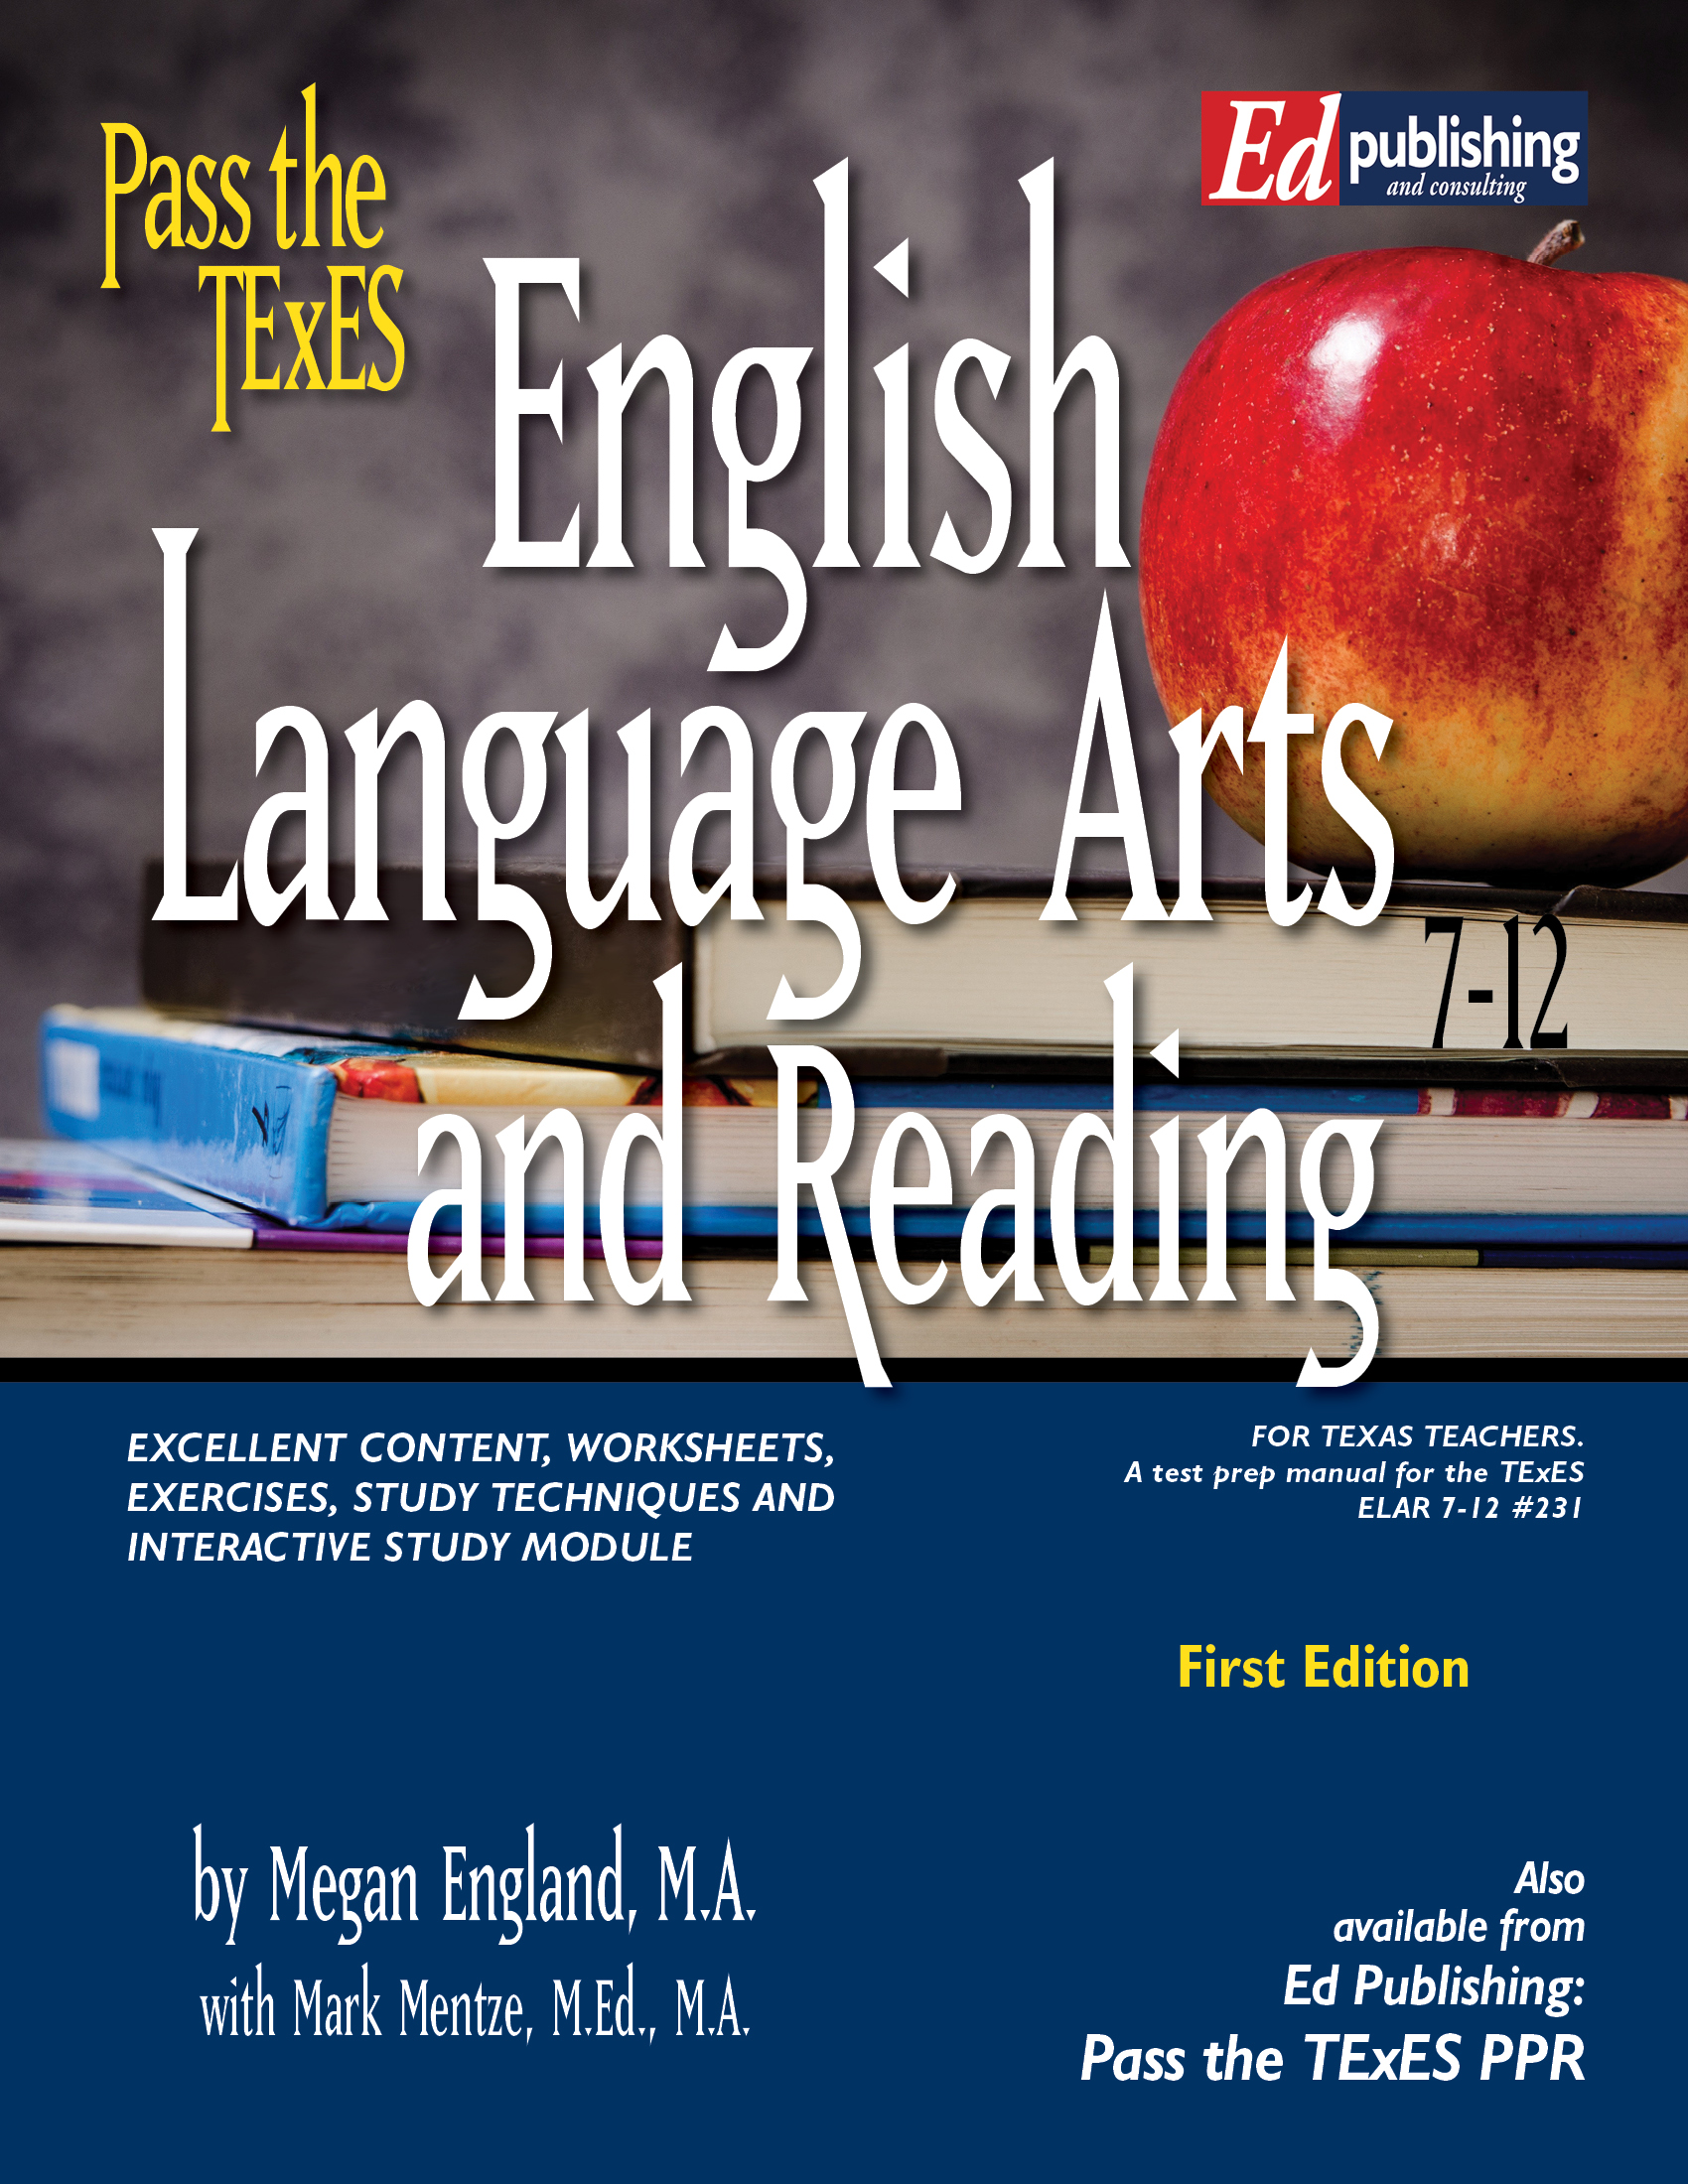 English Lang. Arts & Reading 7-12, 2nd Ed #231 [HARD COPY]